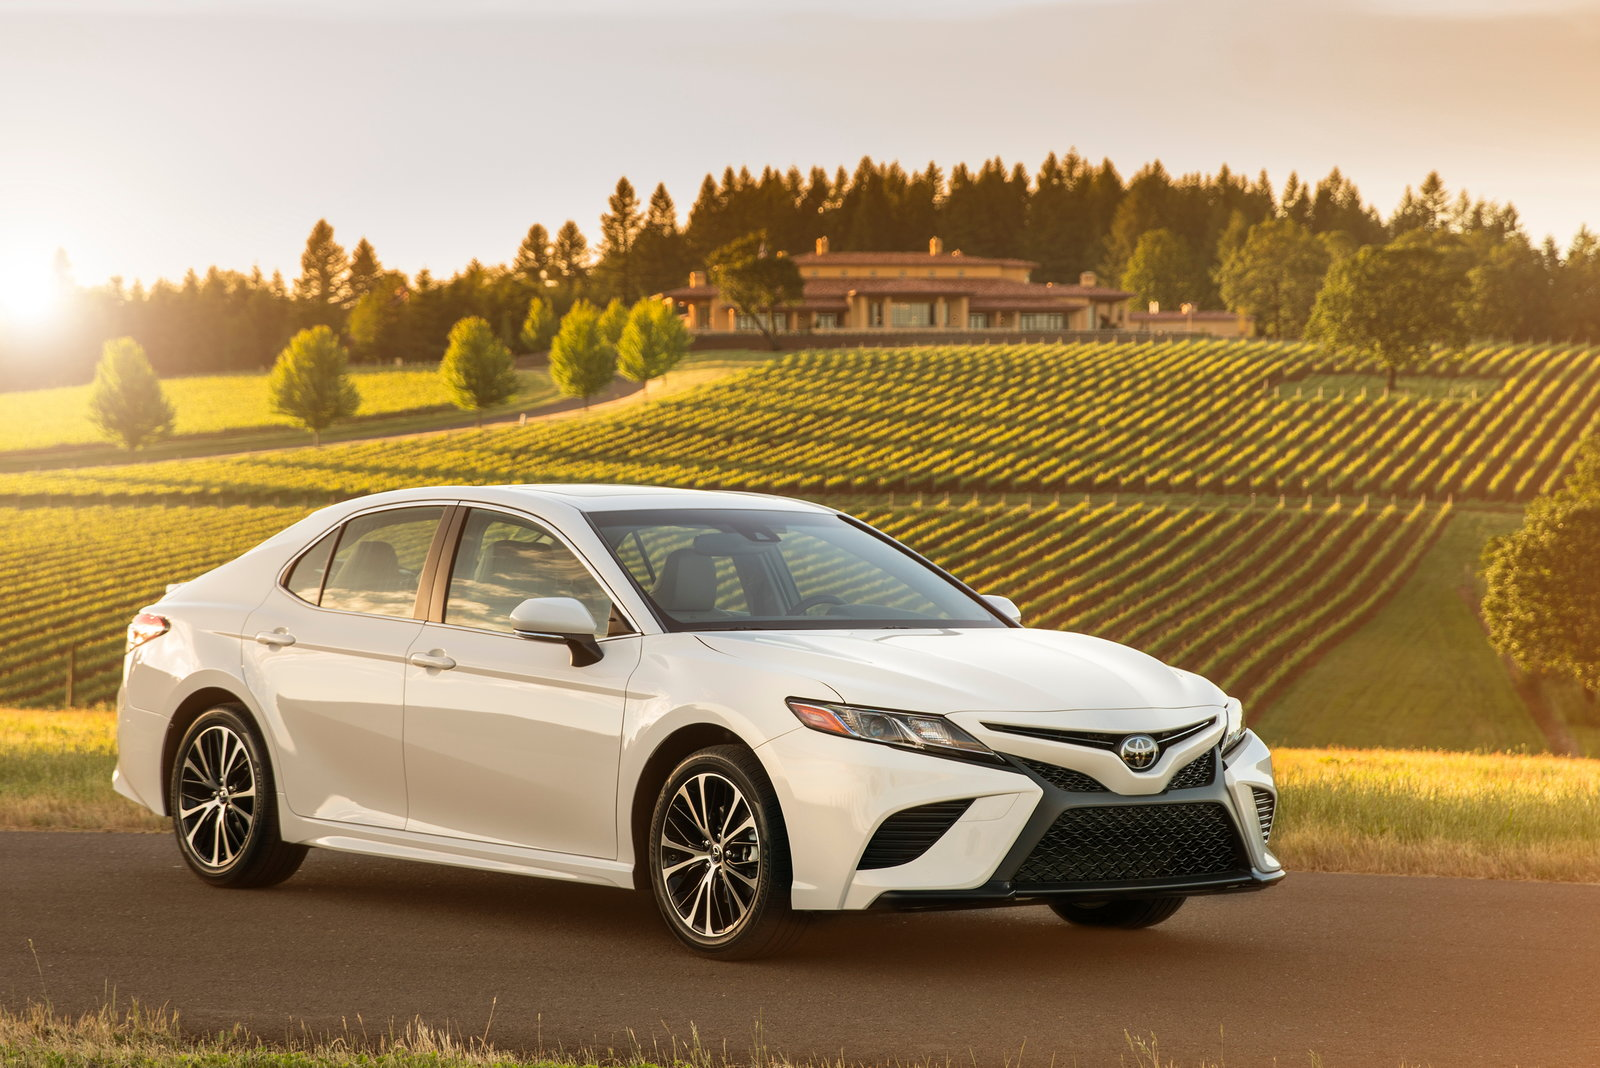 2018 toyota camry deals prices incentives leases overview carsdirect. Black Bedroom Furniture Sets. Home Design Ideas